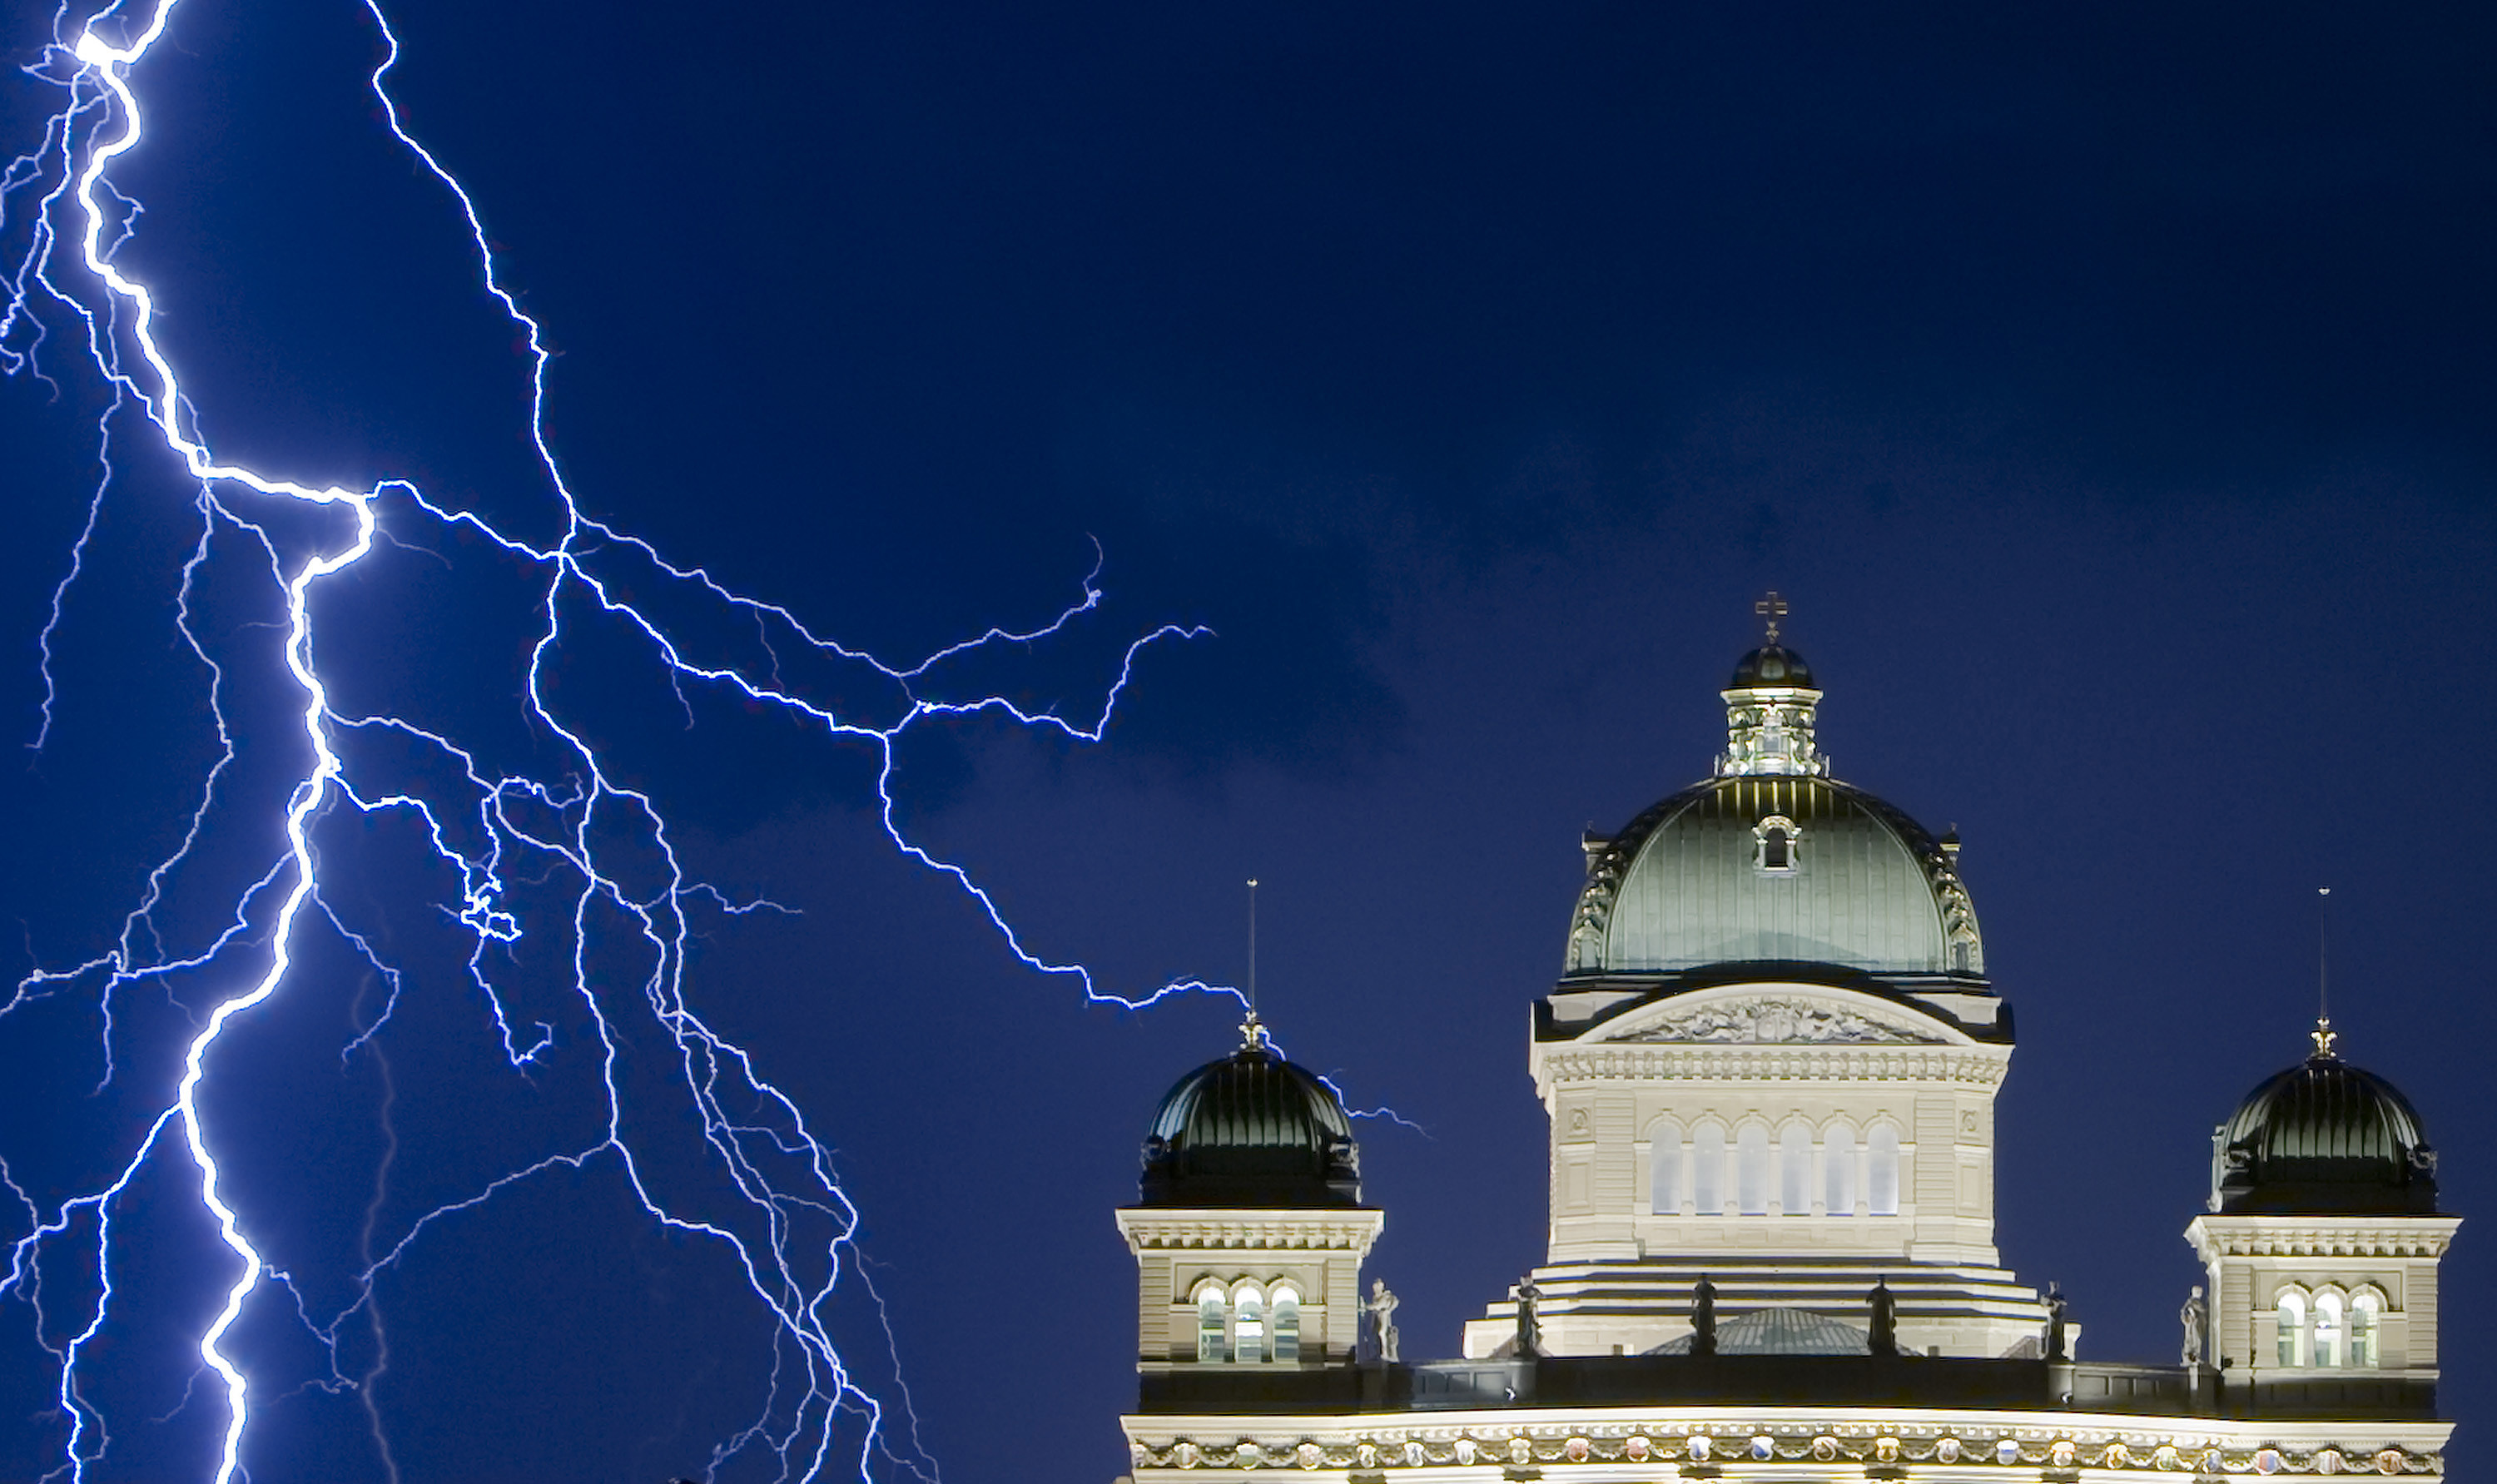 Lightning illuminates the sky during a thunderstorm over the Swiss Federal Palace in Bern.